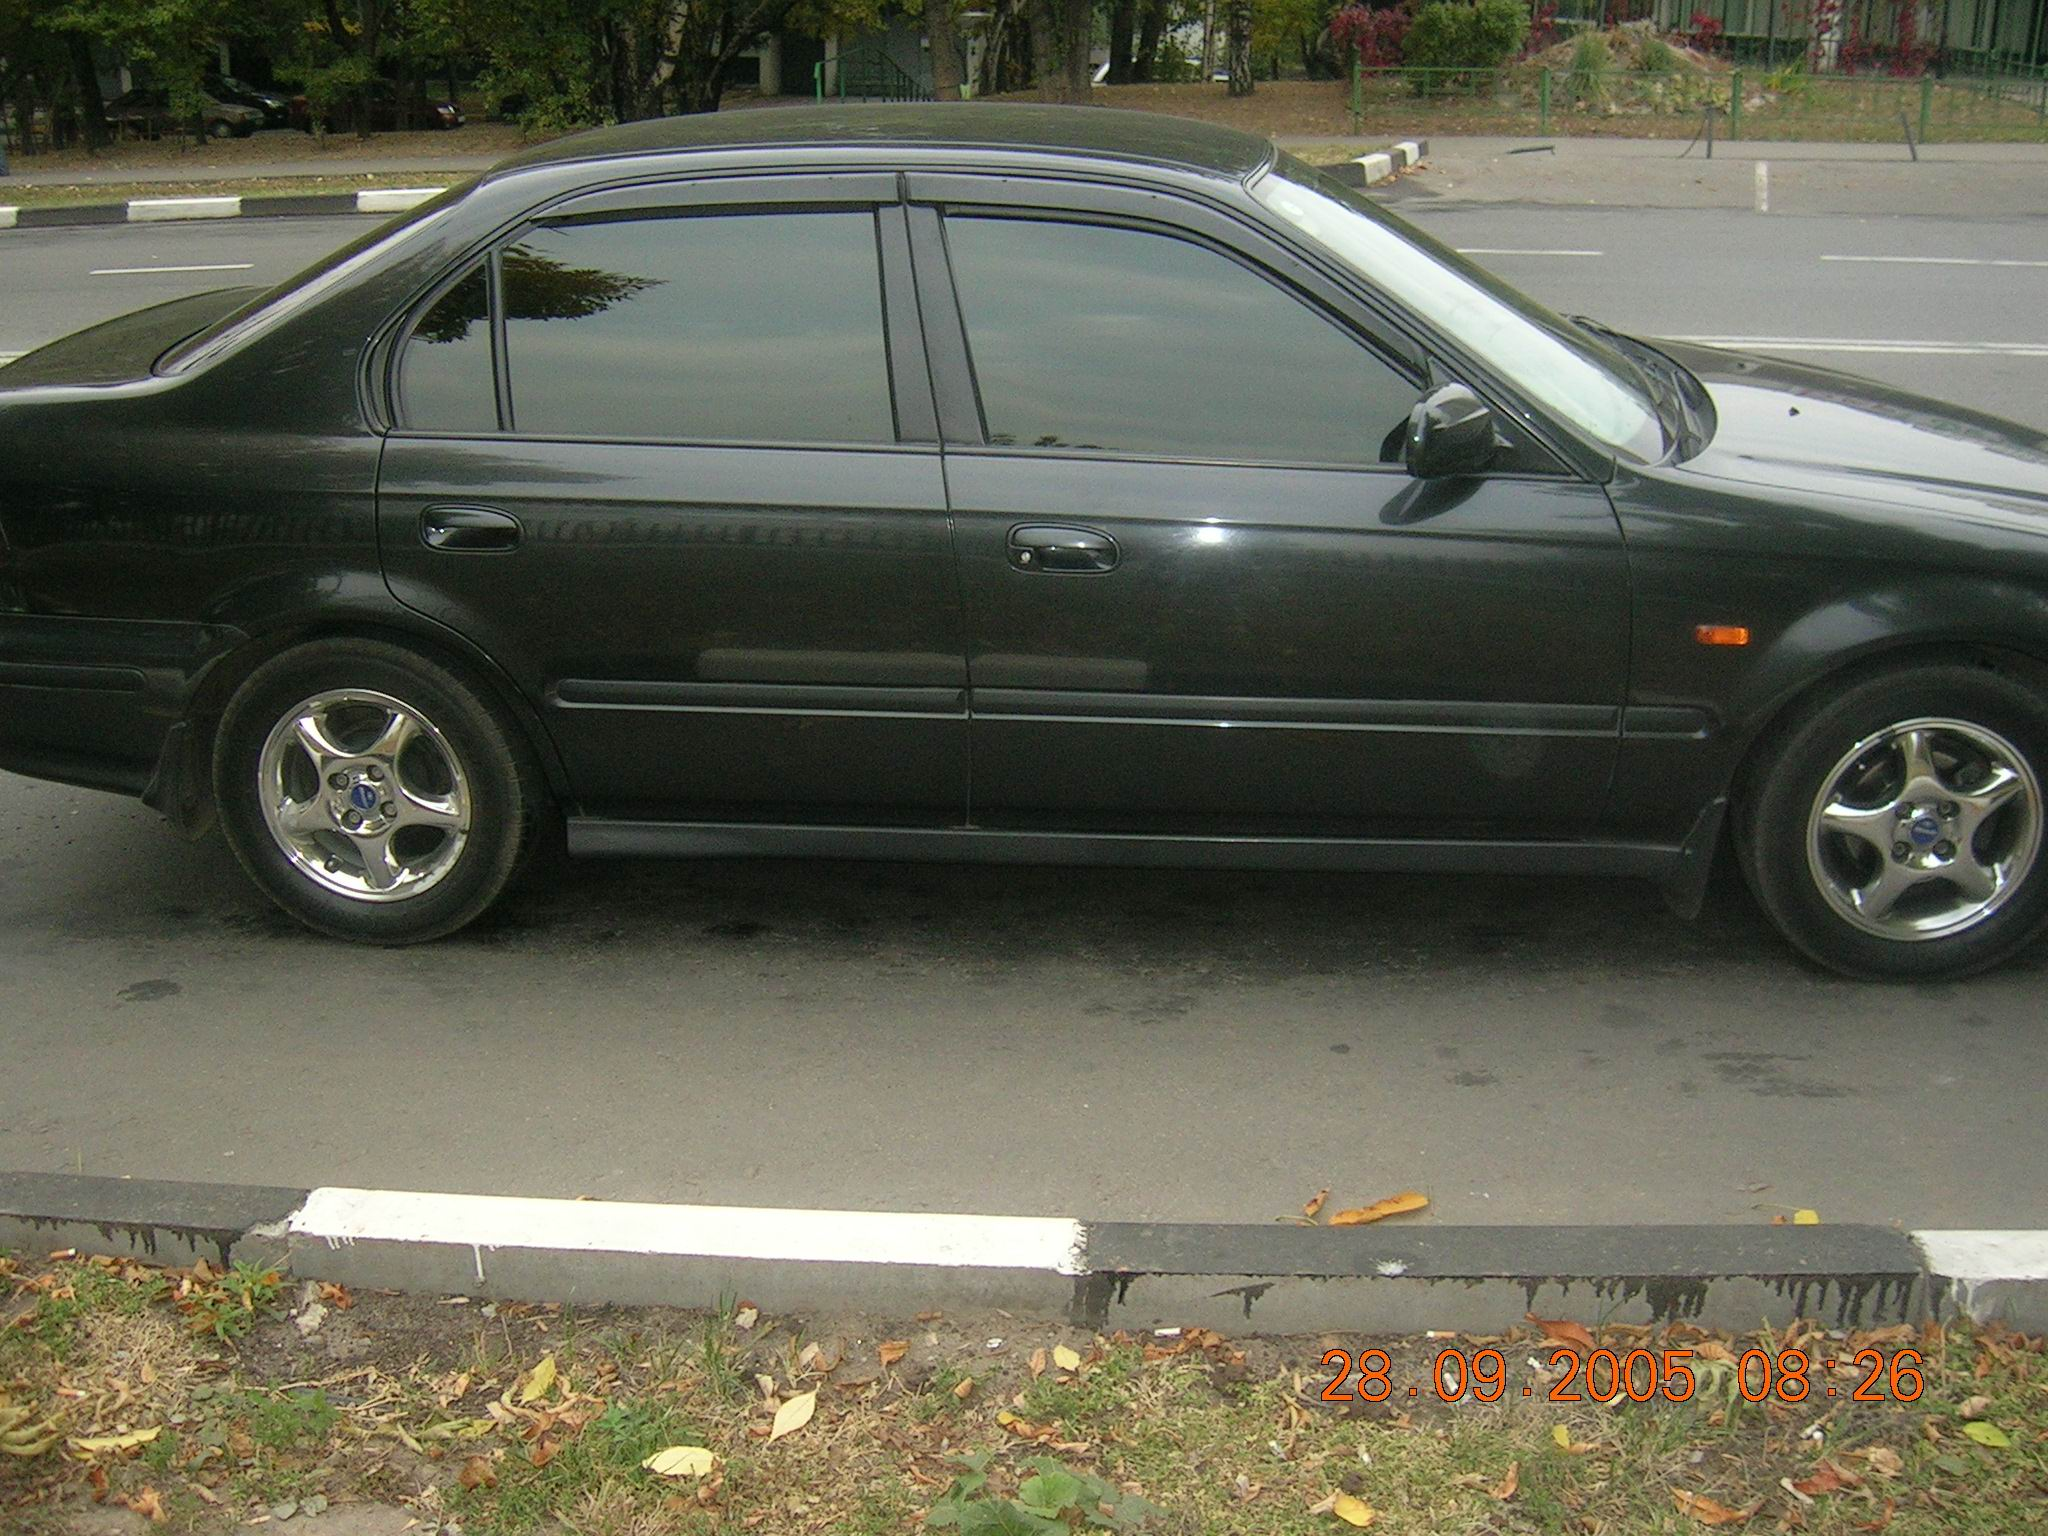 1997 honda civic pictures 1600cc gasoline automatic for Honda civic overheating